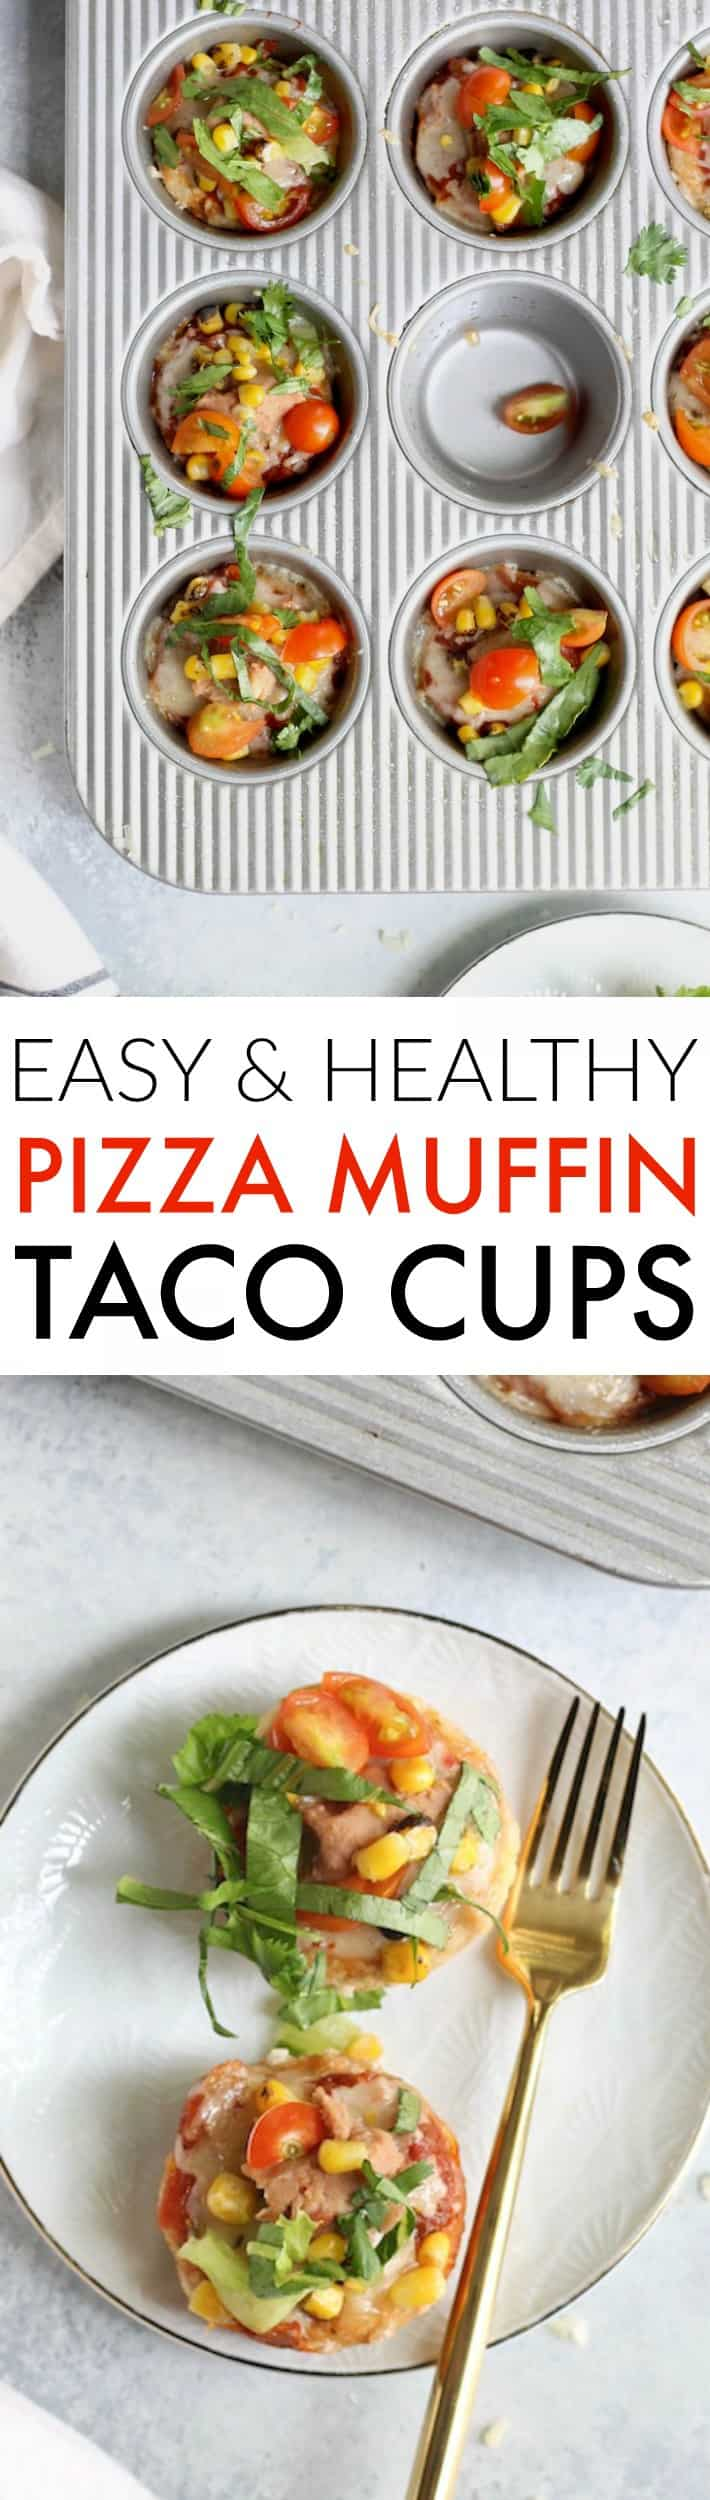 Dig into these quick and easy Taco Pizza Muffin Cups as a fun appetizer or wholesome after-school snack! Kids and adults alike will love this fun recipe.